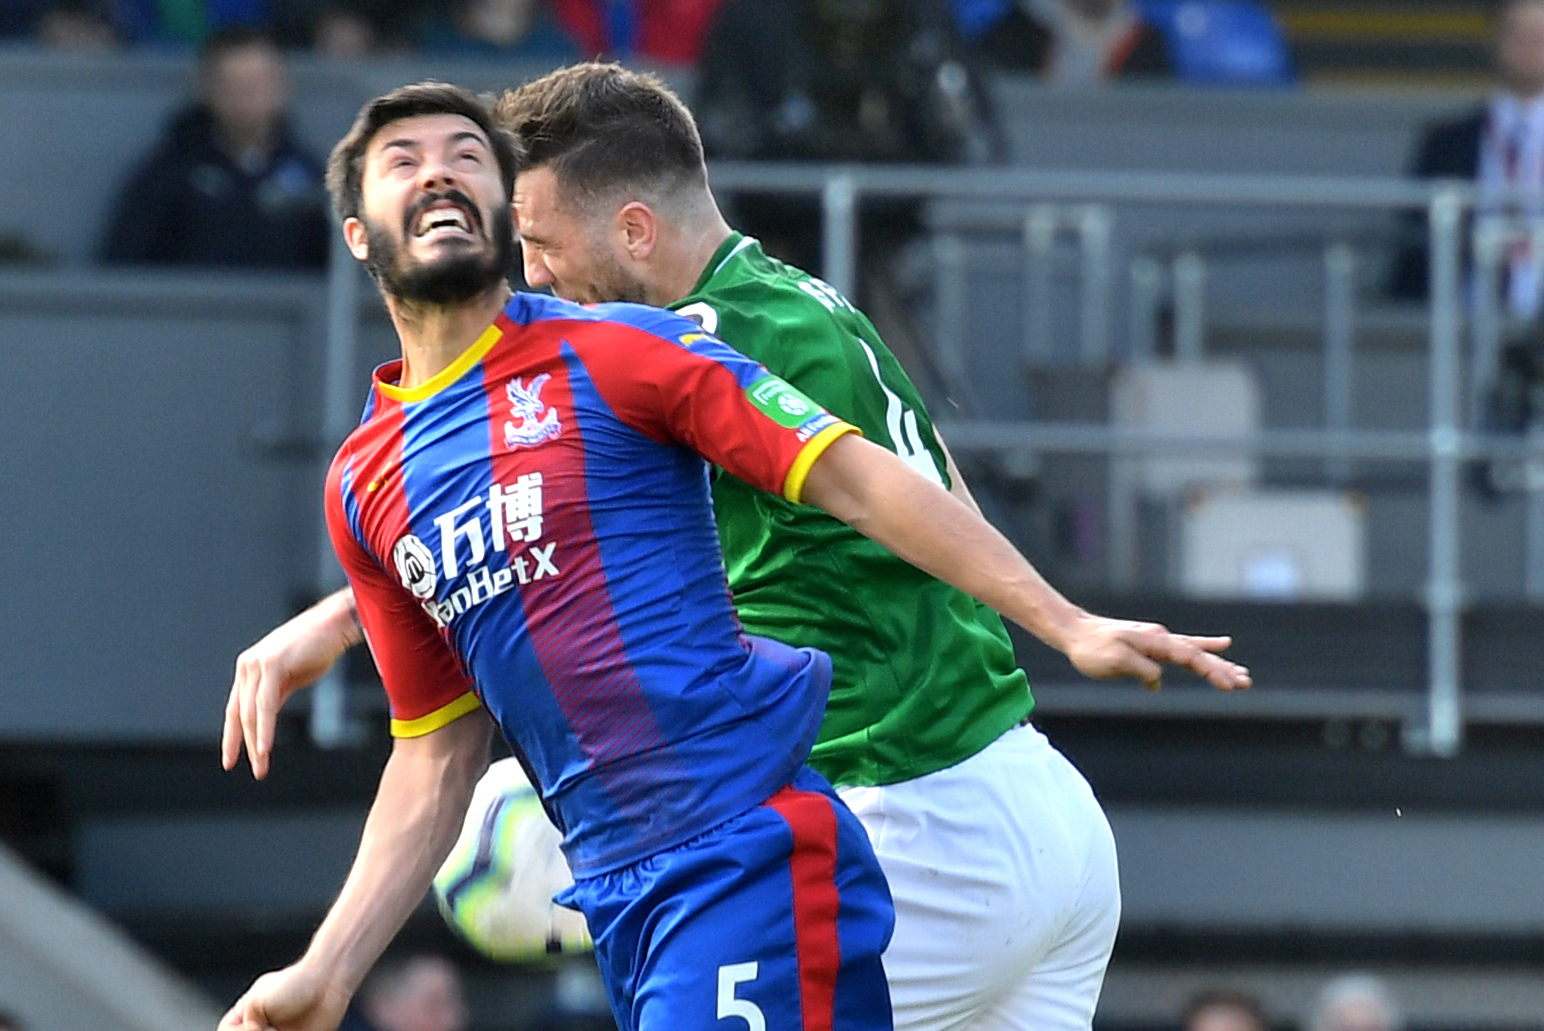 Player ratings from Crystal Palace's derby defeat to Brighton